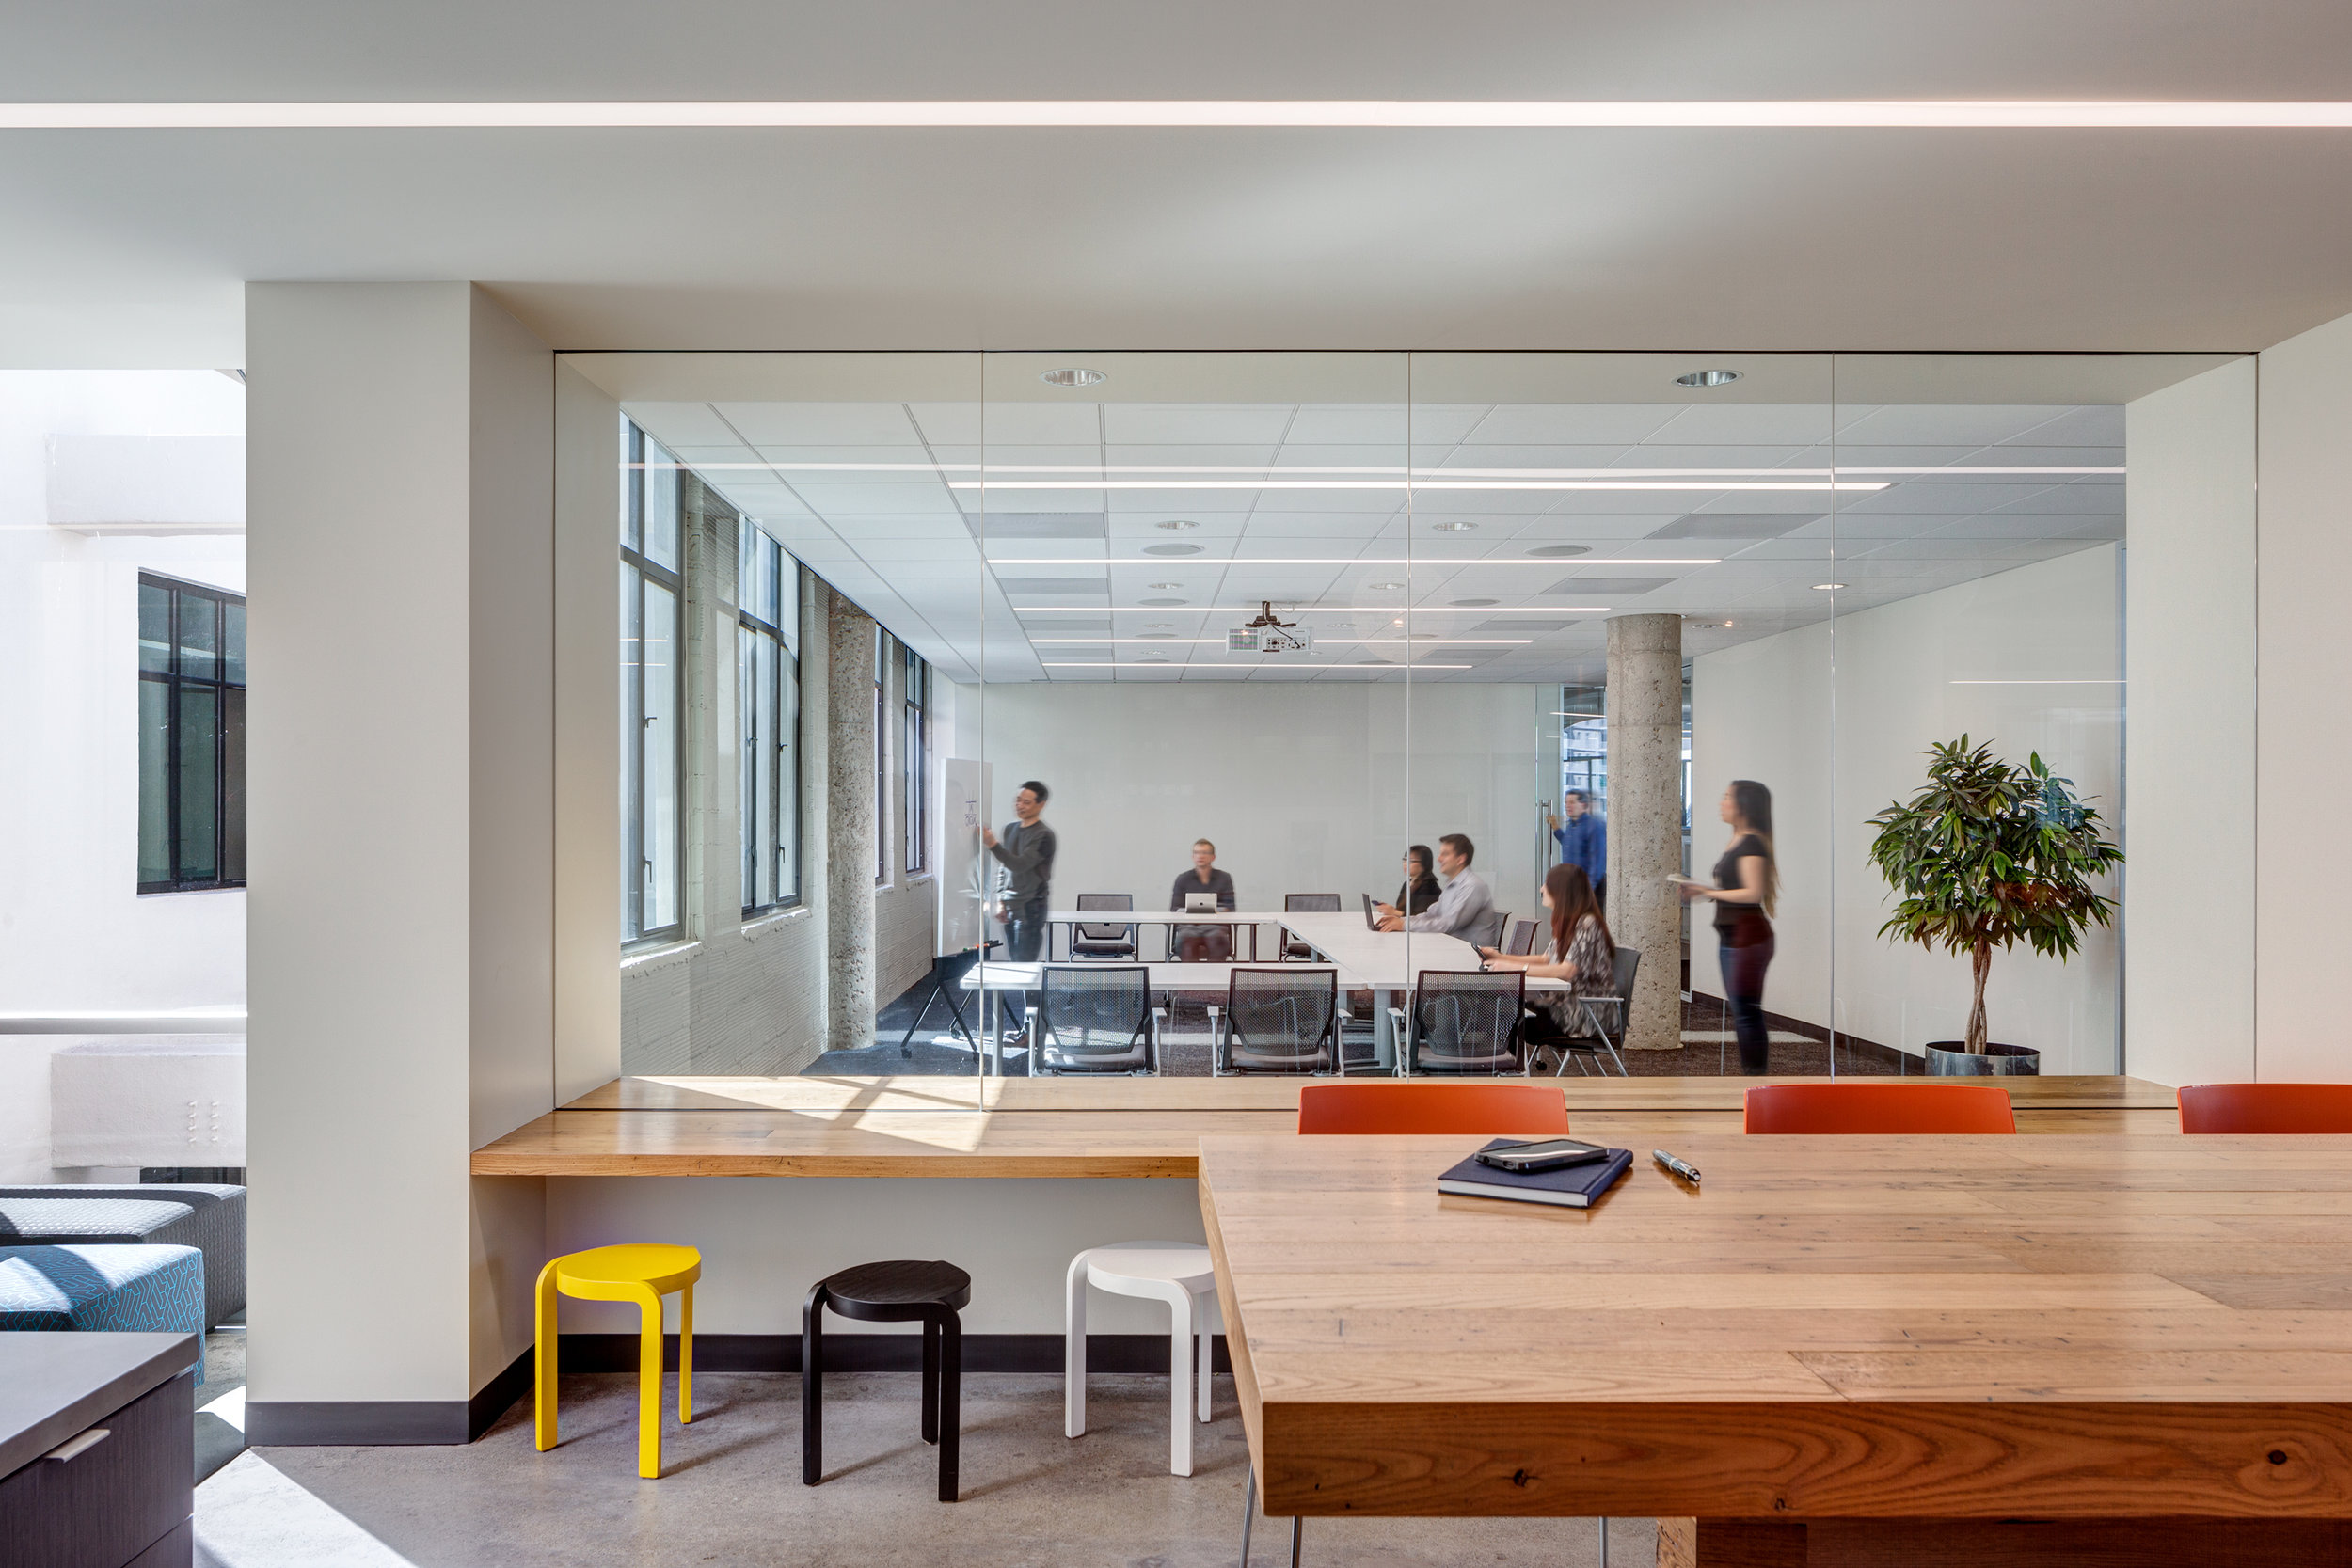 InsideSource_OfficePhoto_Interior-Architects-1.jpg